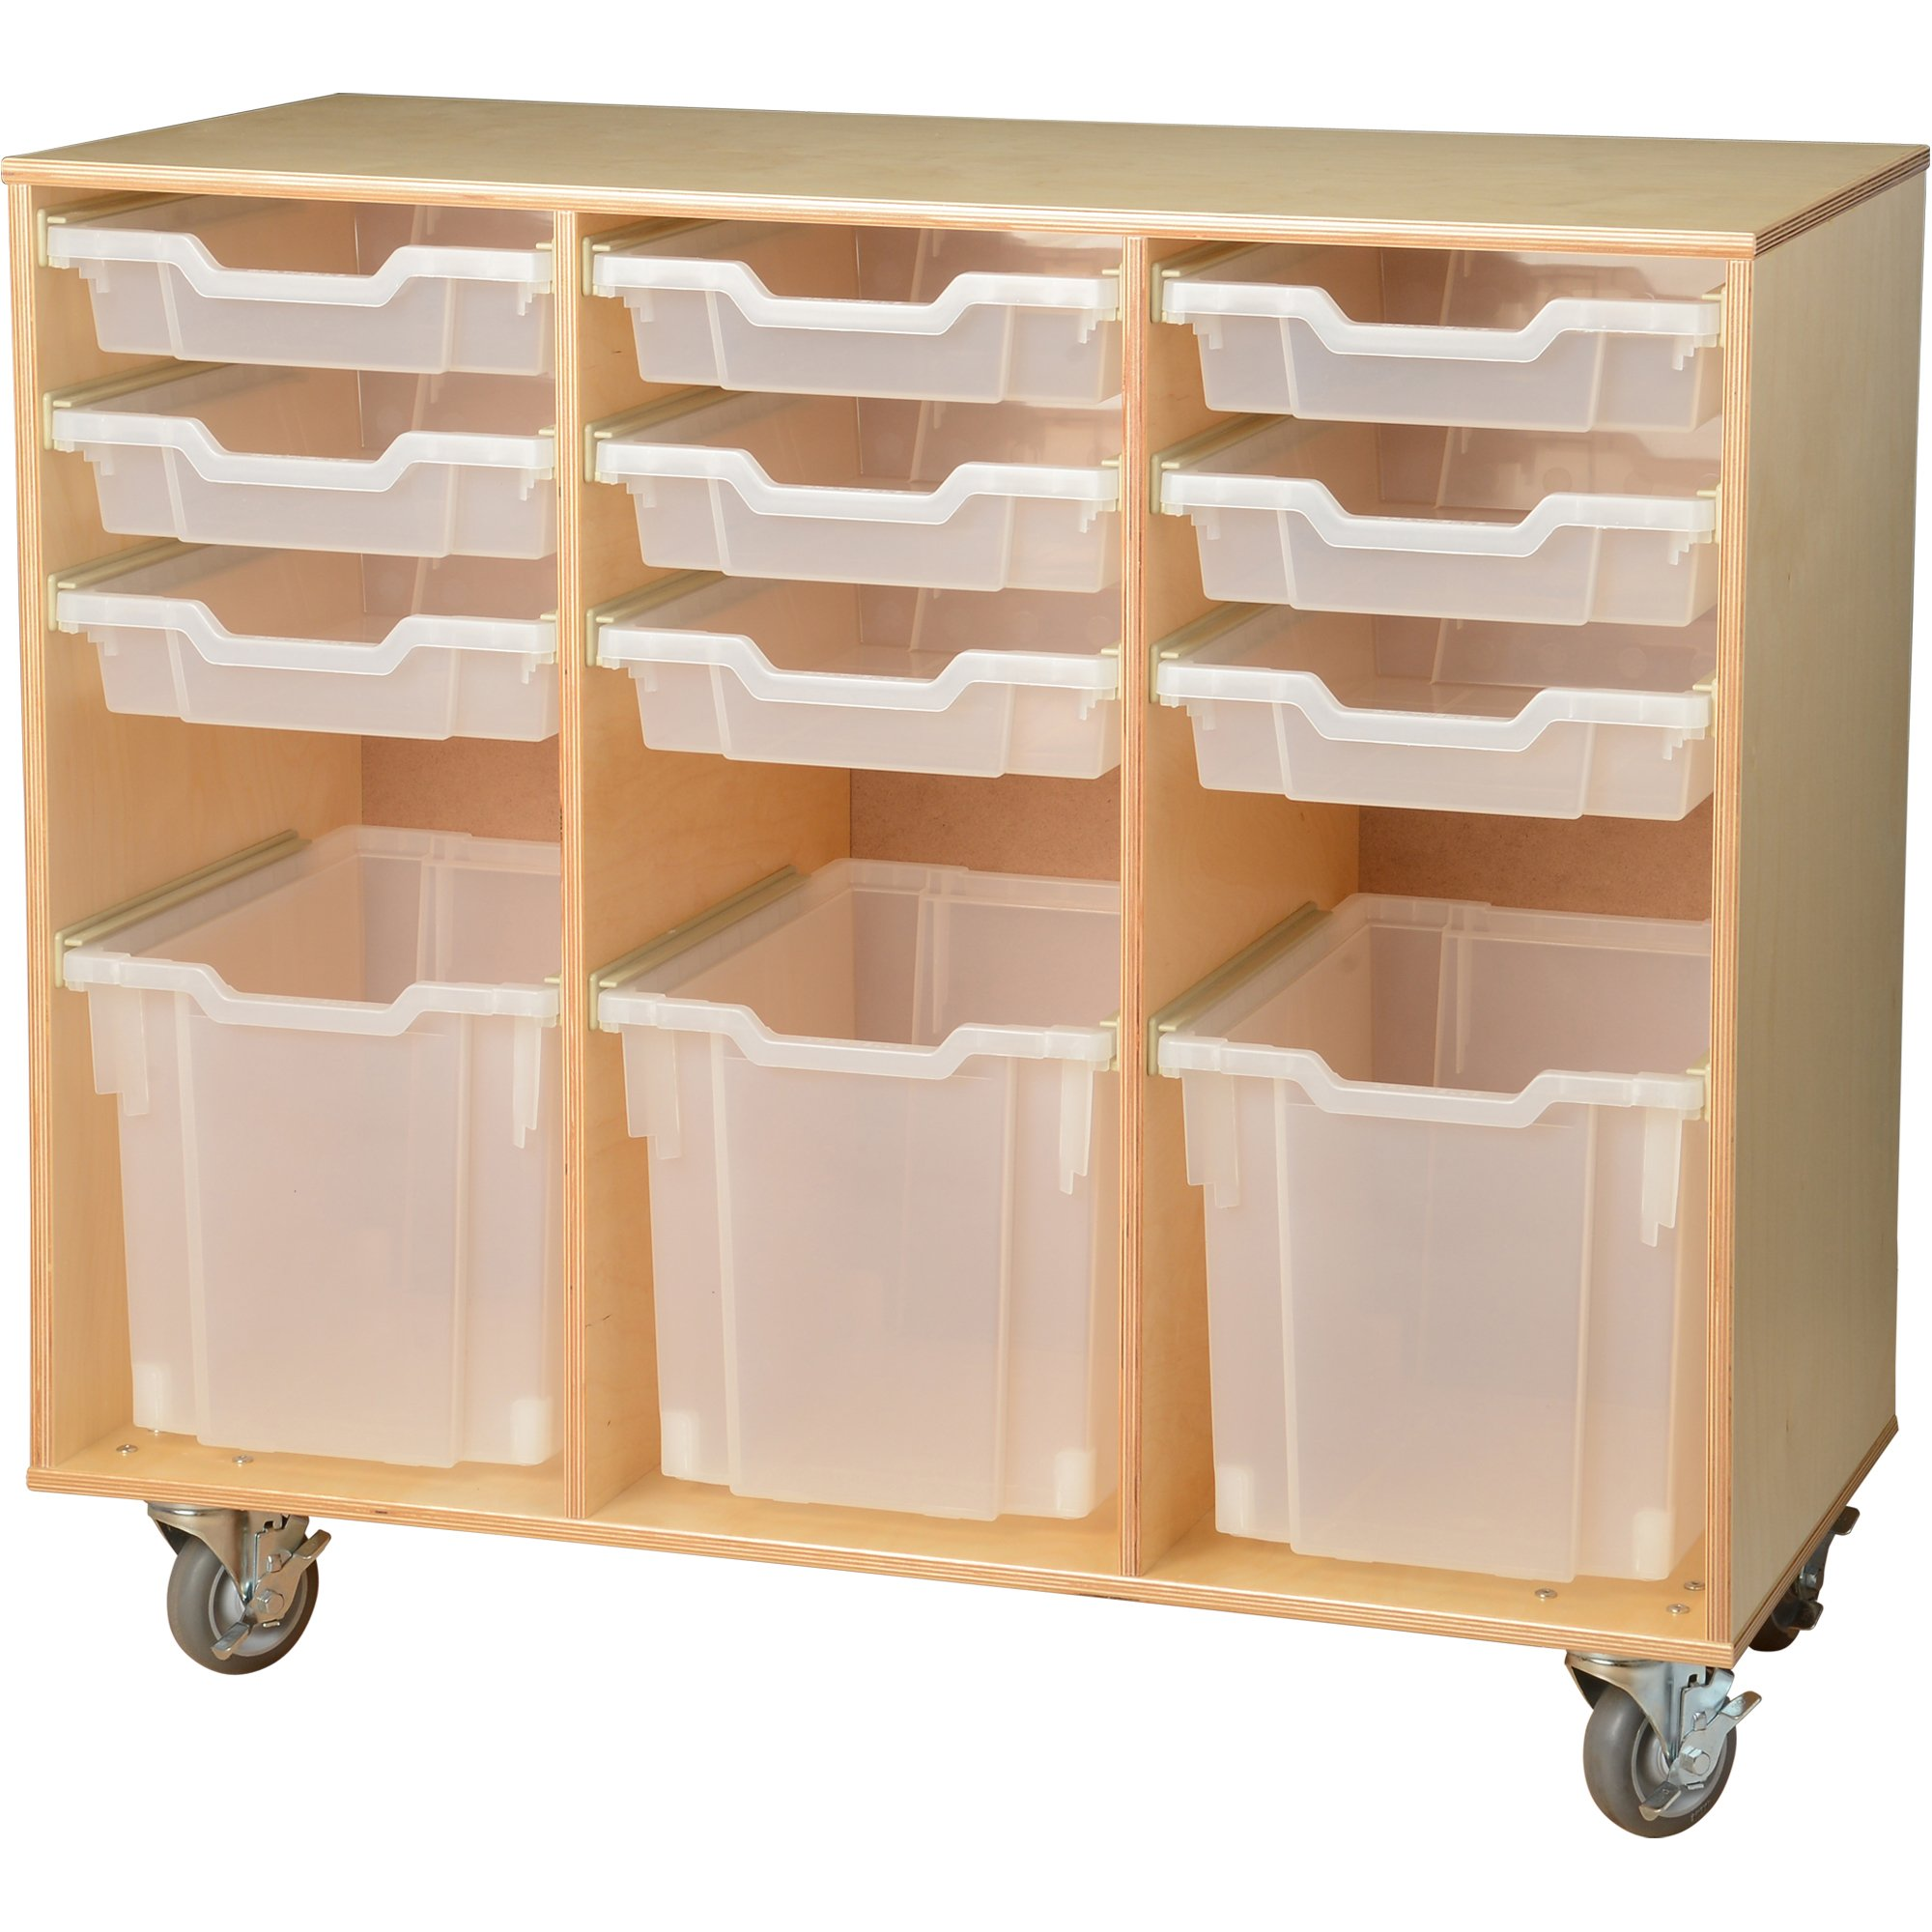 Constructive Playthings WB-903 Creative Arts Birch Cart with Write and Wipe Board On the Back, Grade: kindergarten to 6, Brown